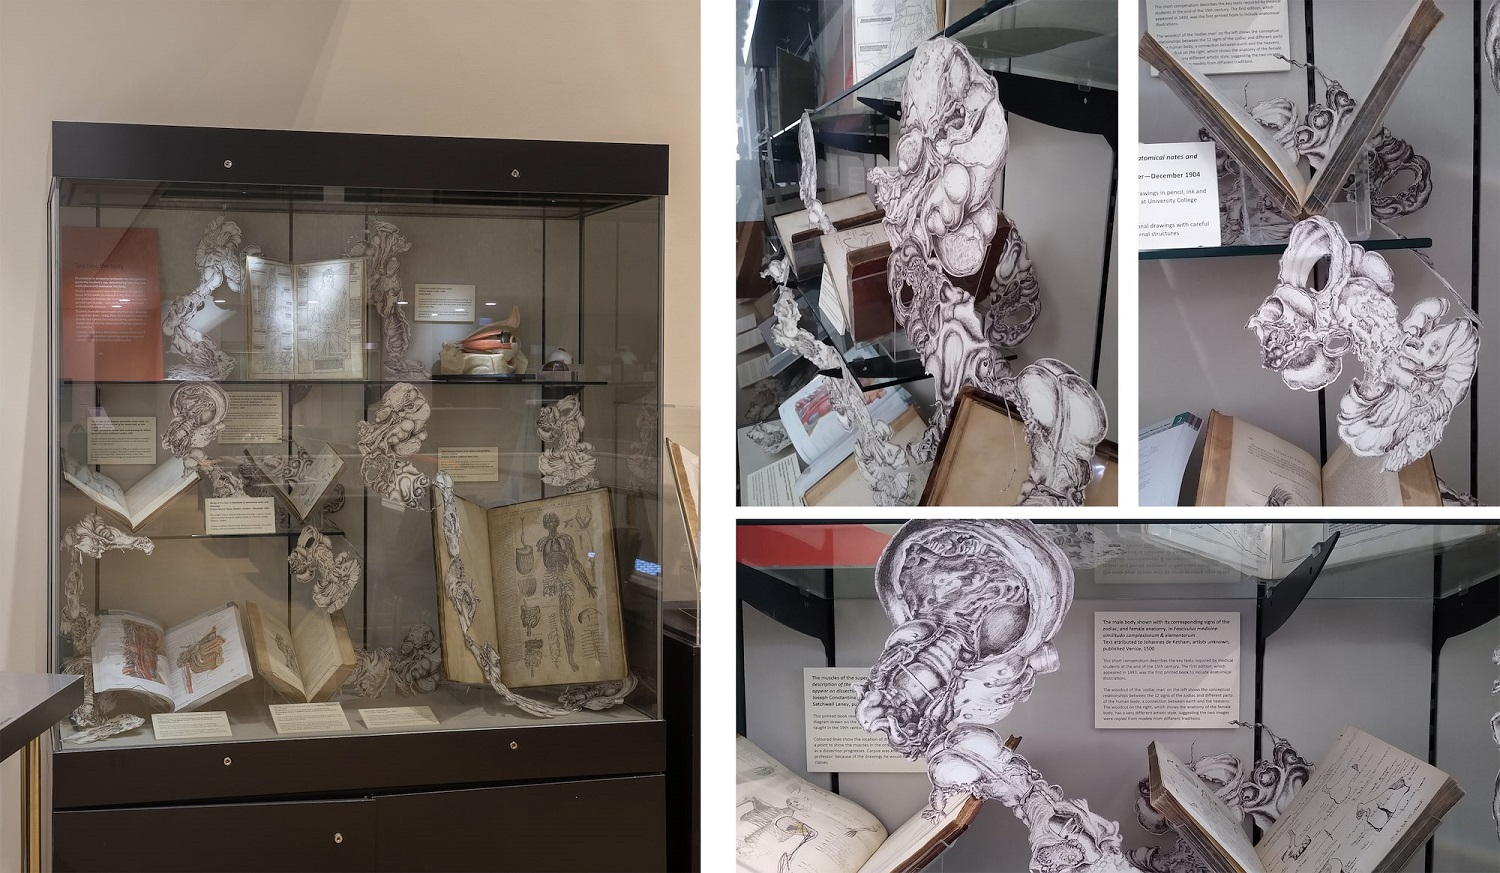 Composite drawings of anatomical illustrations, intertwined with a museum display of open books.